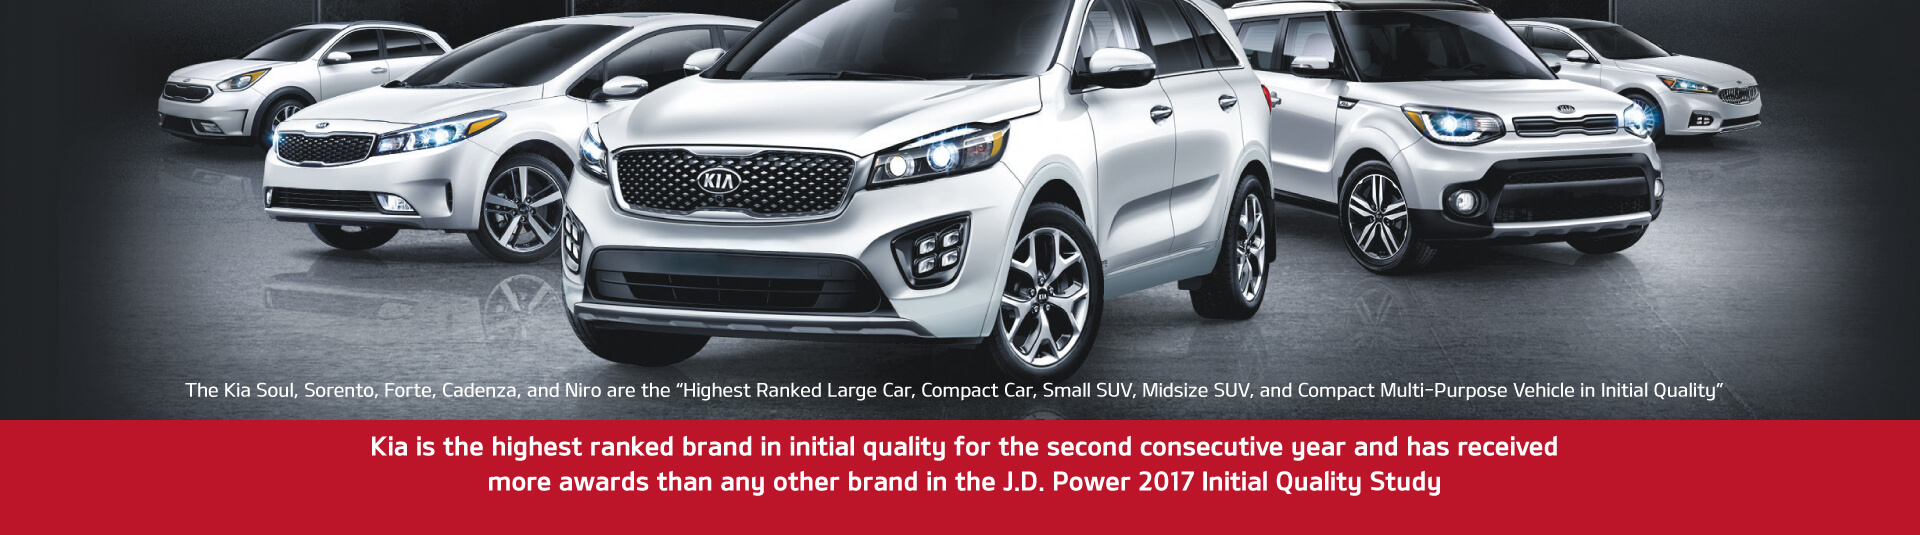 Kia Top Quality Vehicles